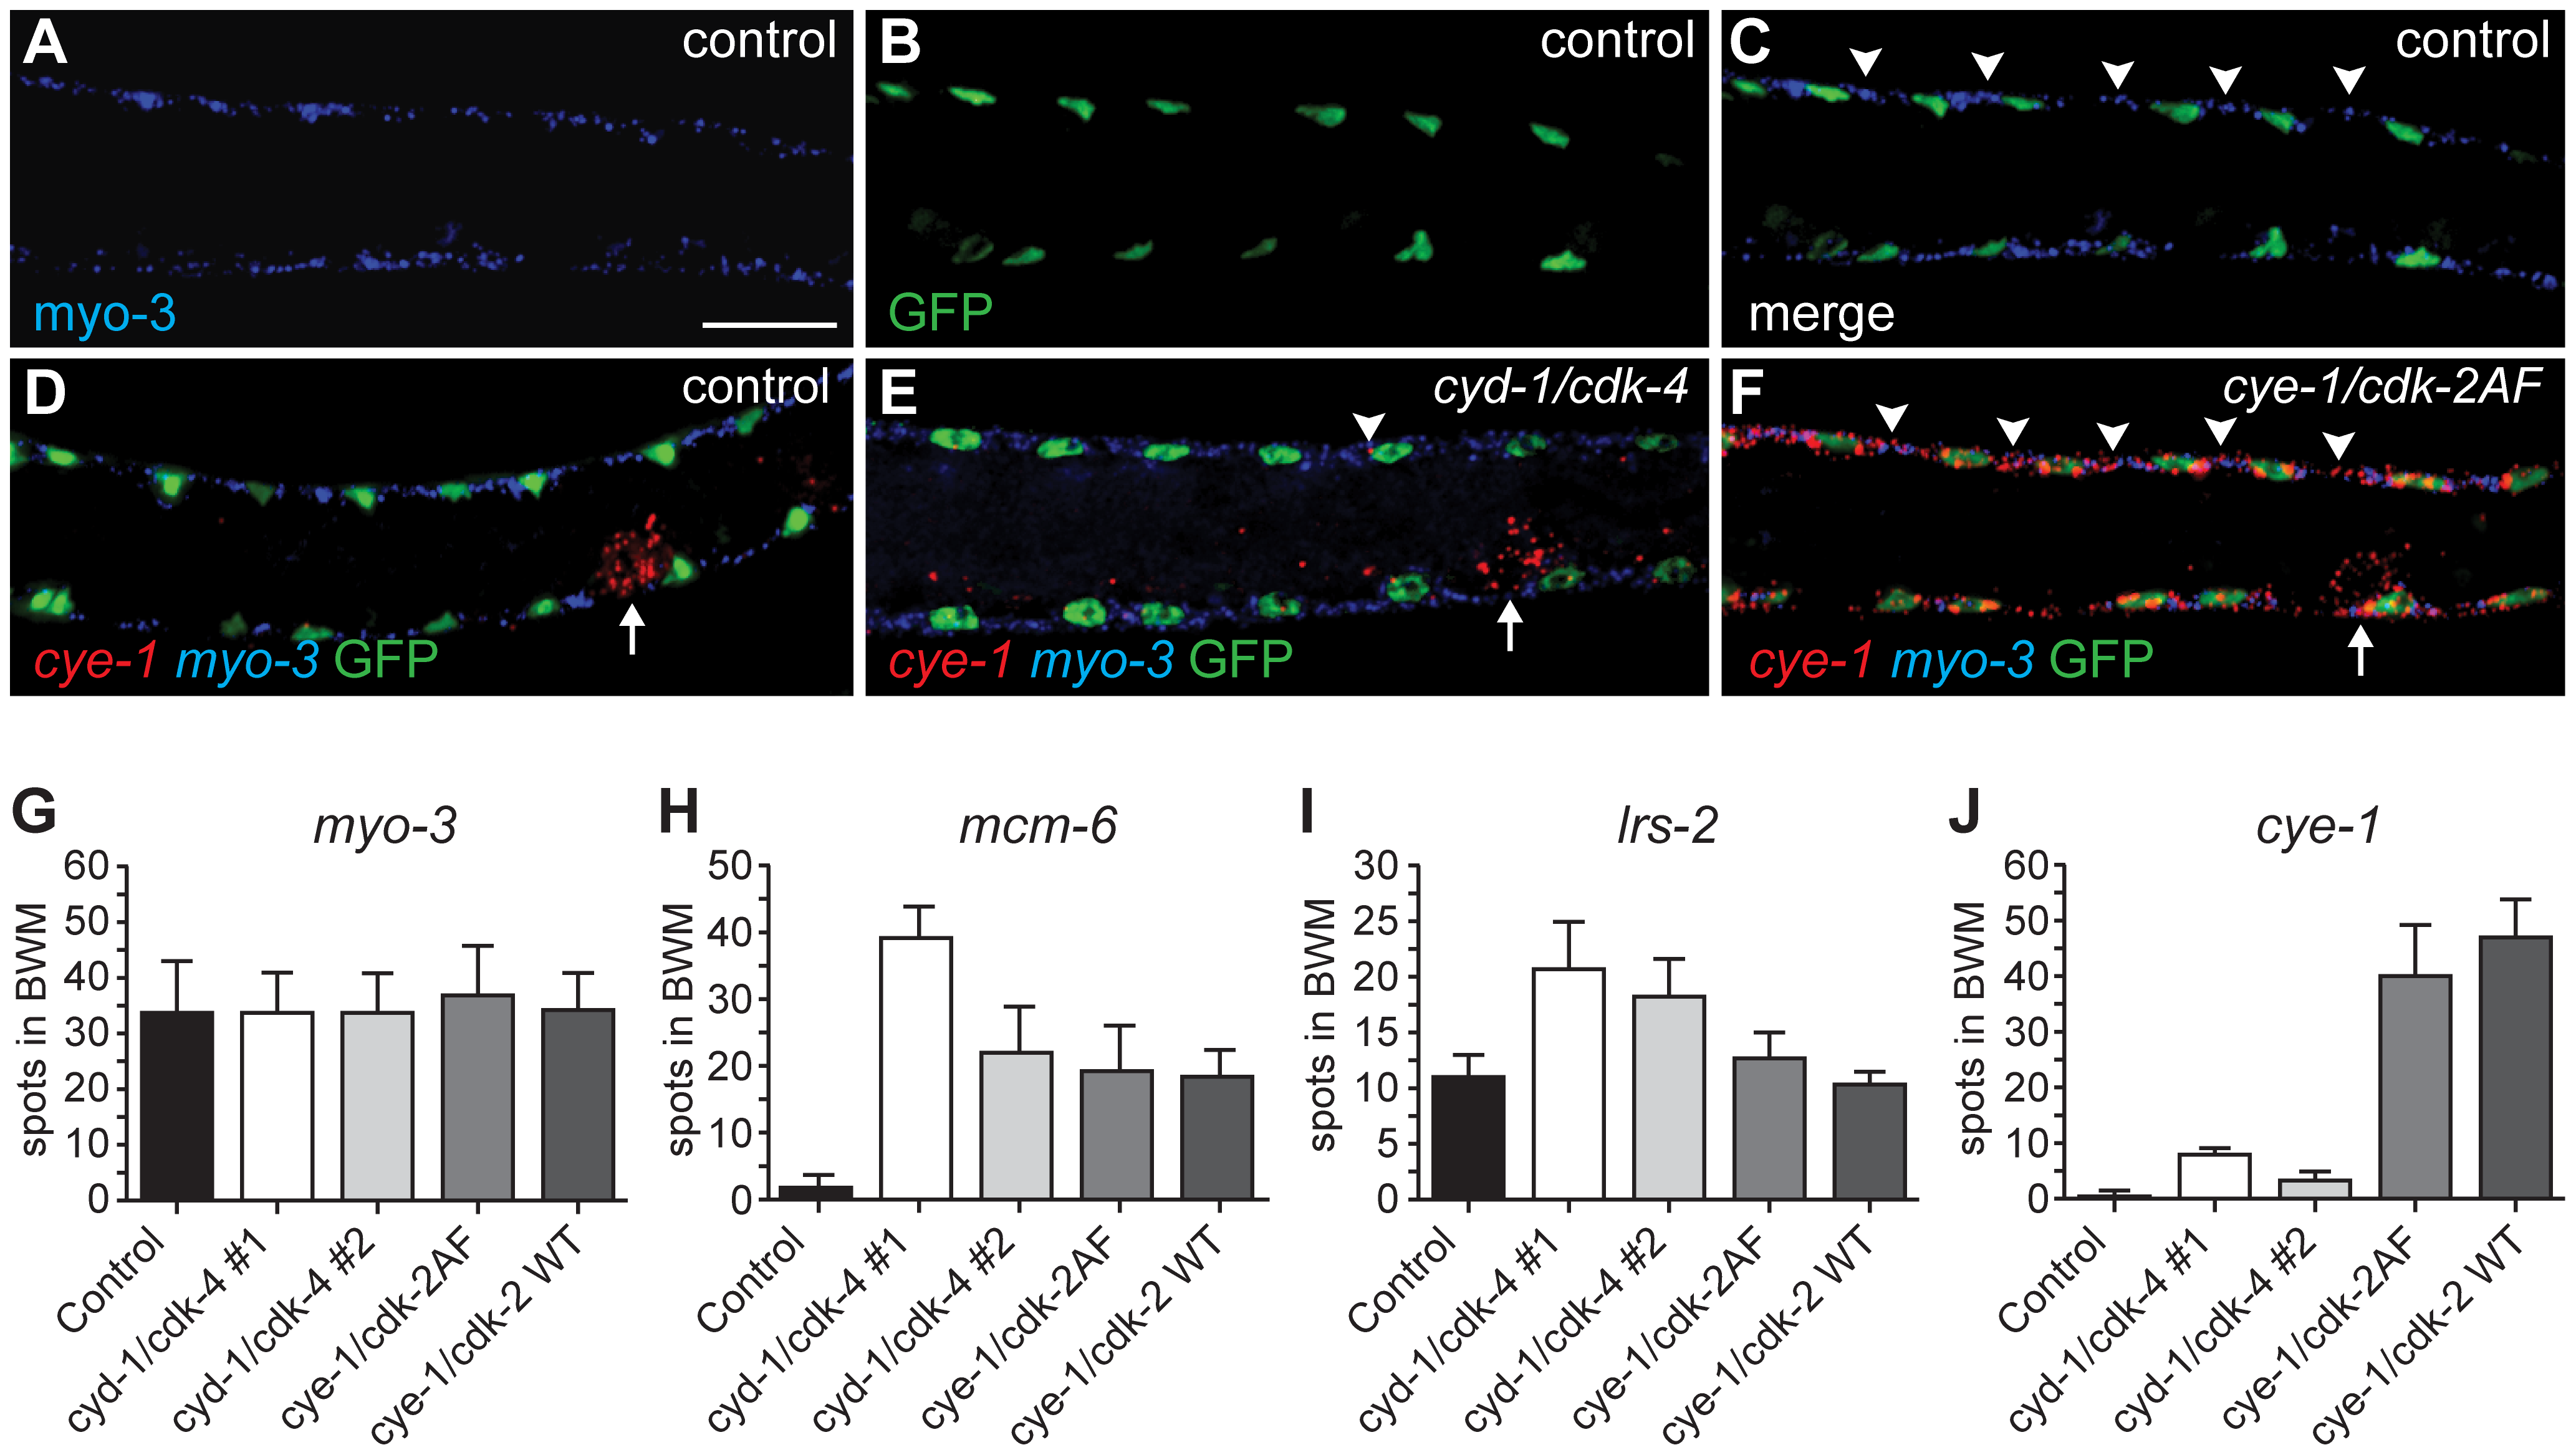 Single molecule FISH shows gene expression in individual muscle cells and limited <i>cye-1</i> induction by CYD-1/CDK-4.